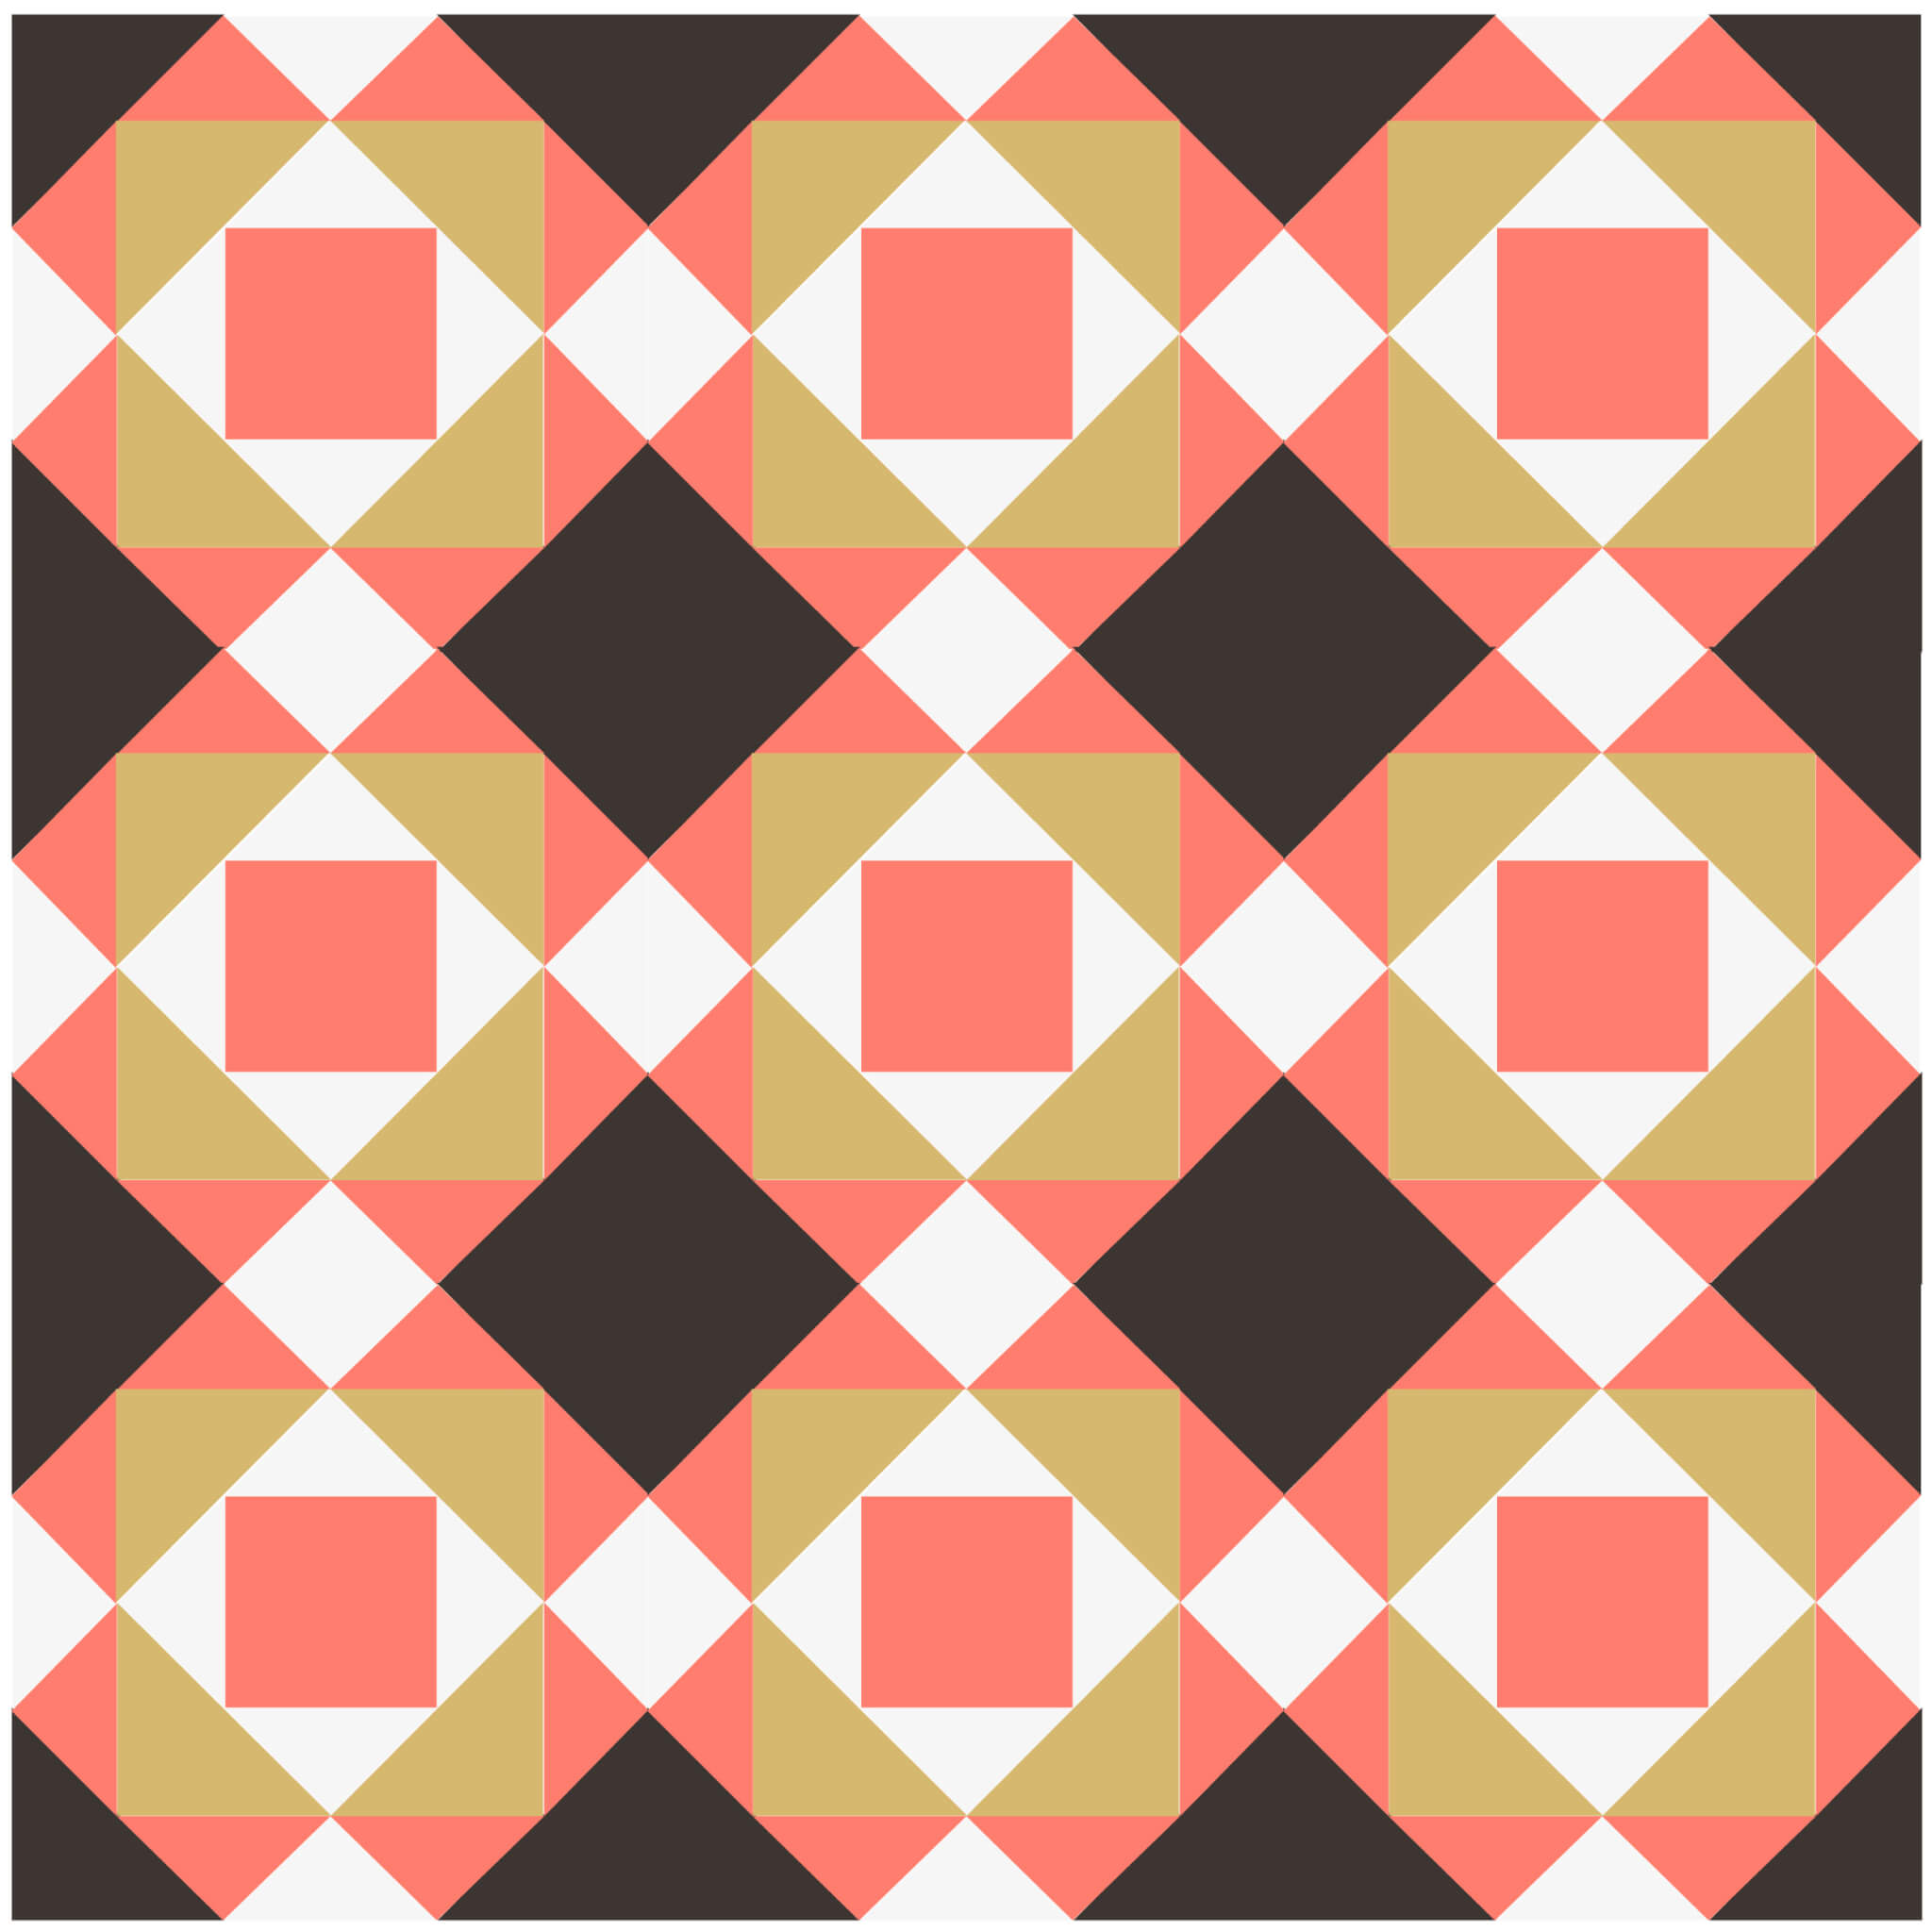 Illustration of a quilt made with Gentleman's Fancy Quilt Blocks